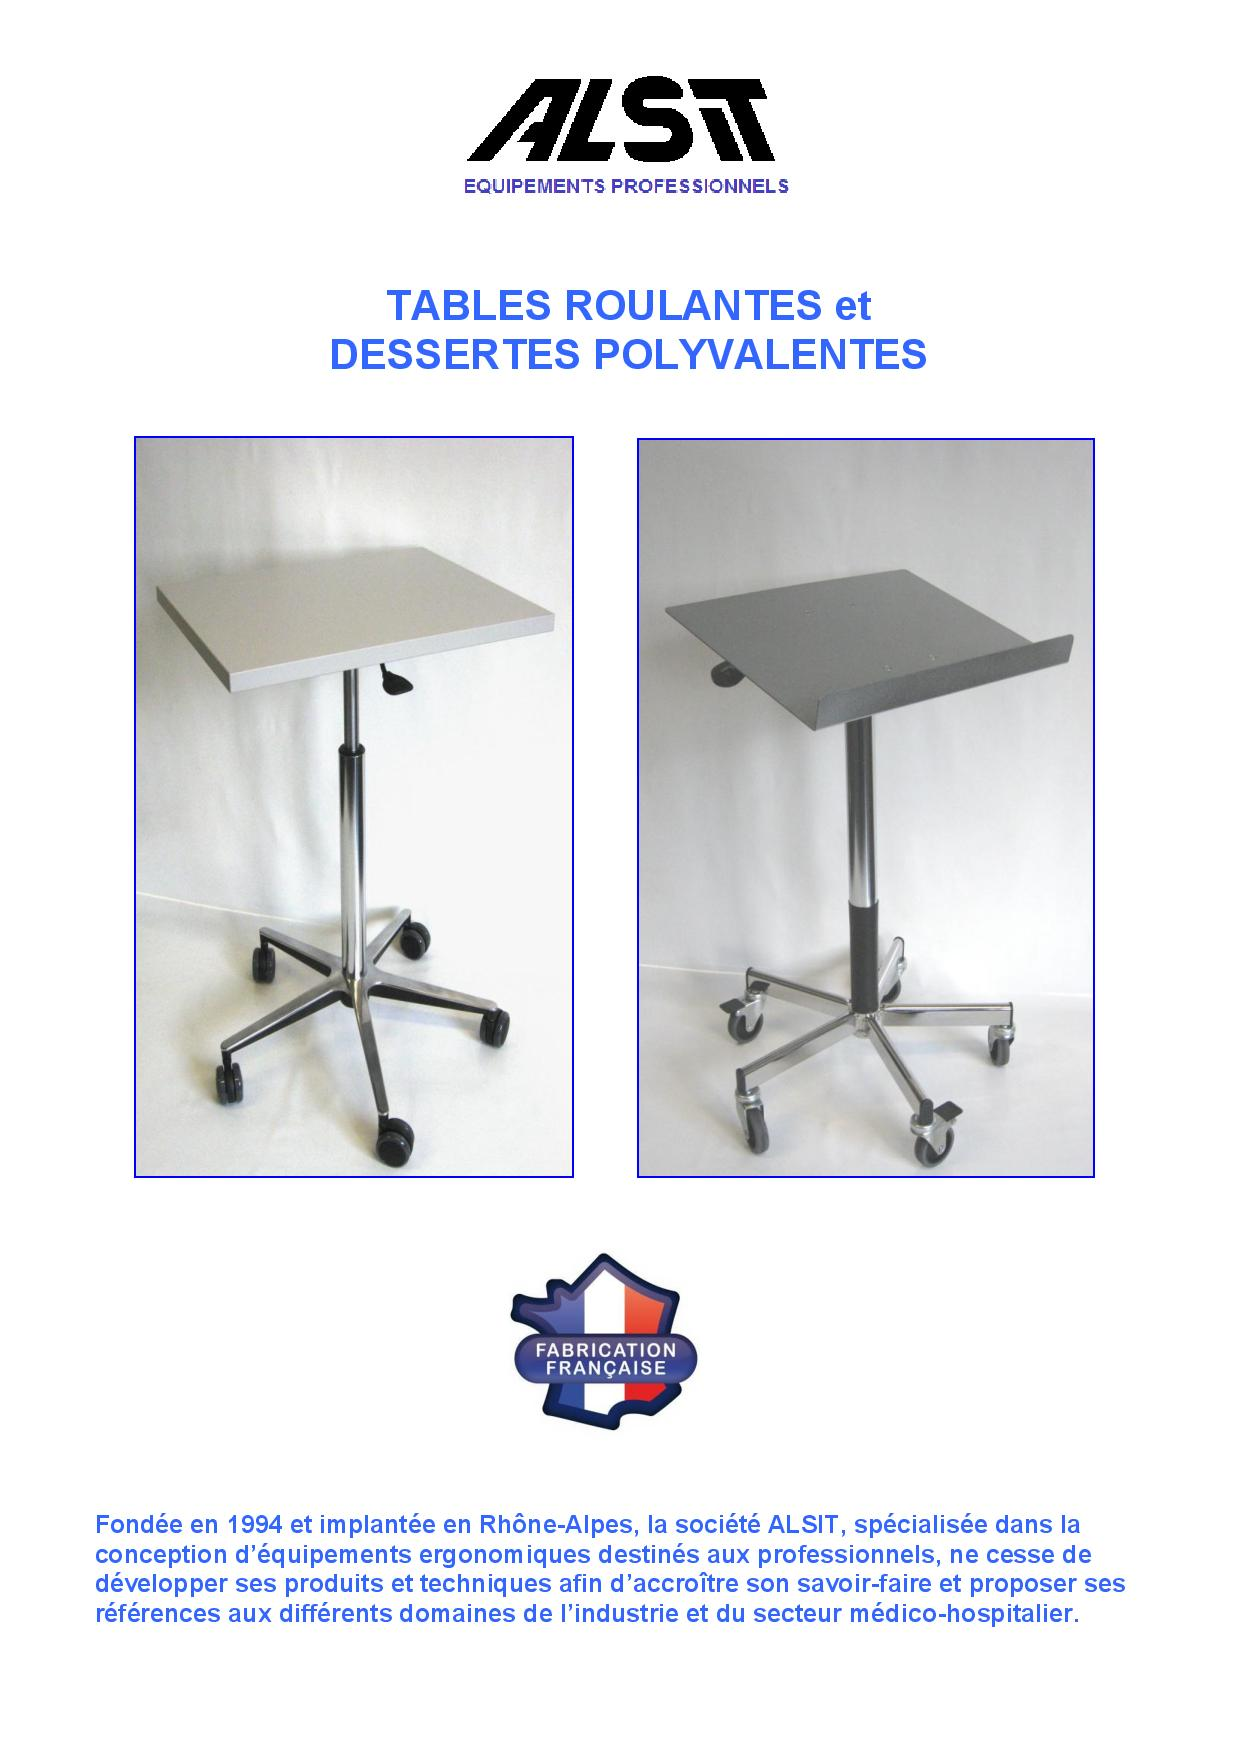 Couverture Depliant ALSIT Tables et Dessertes